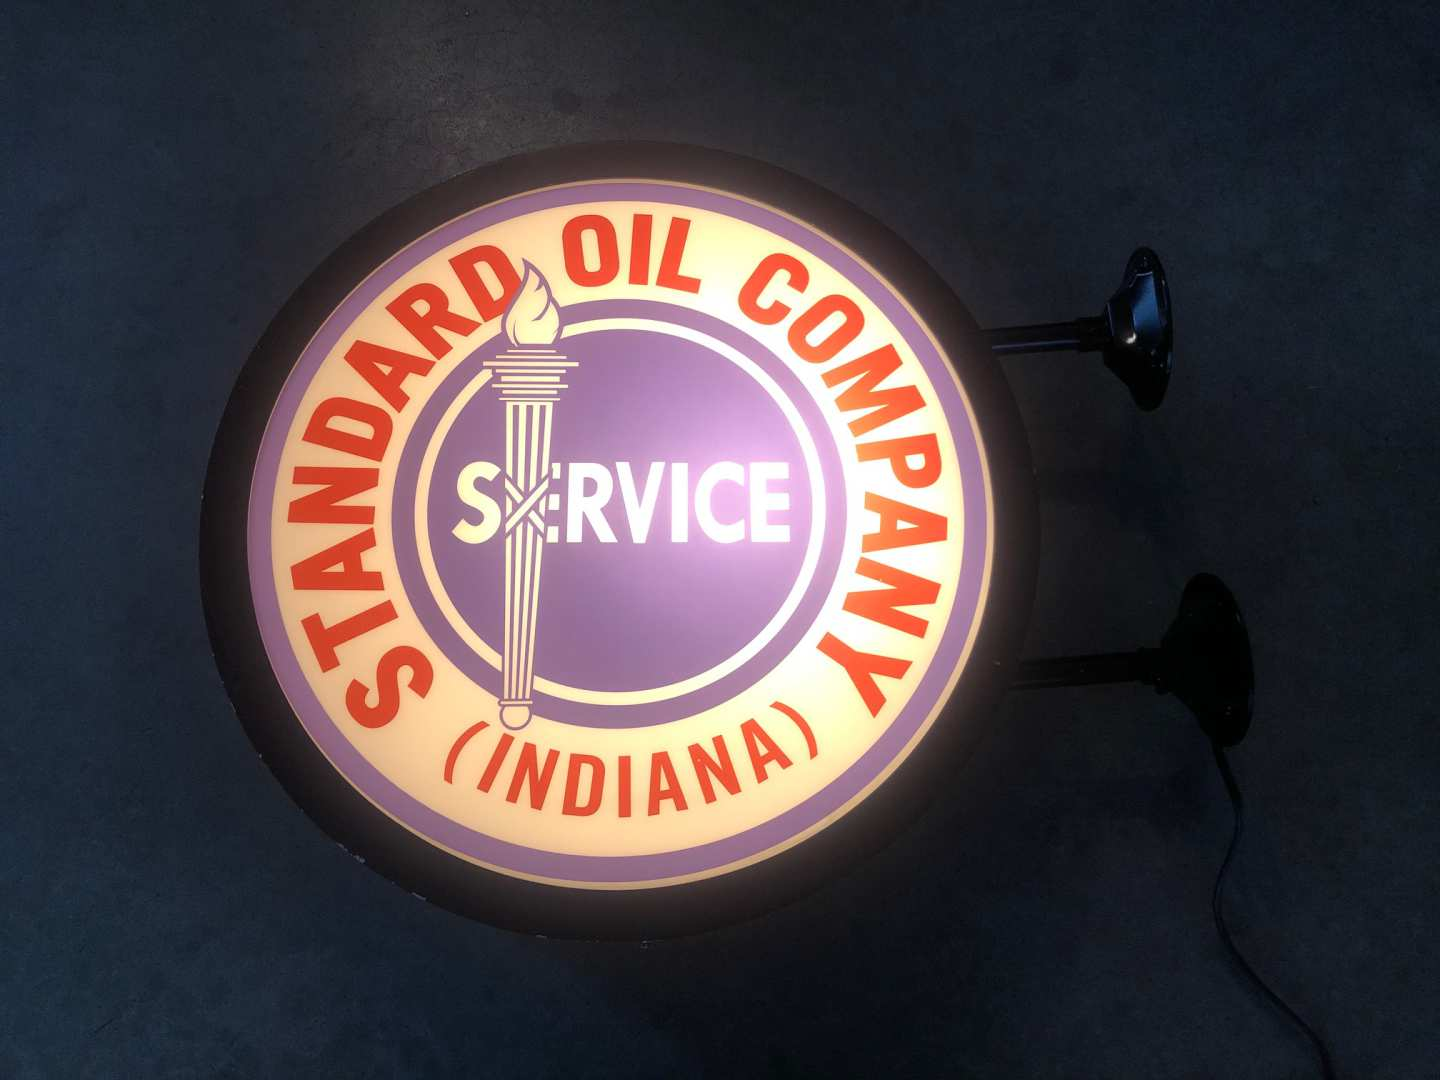 1st Image of a N/A STANDARD OIL COMPANY LIGHTED SIGN